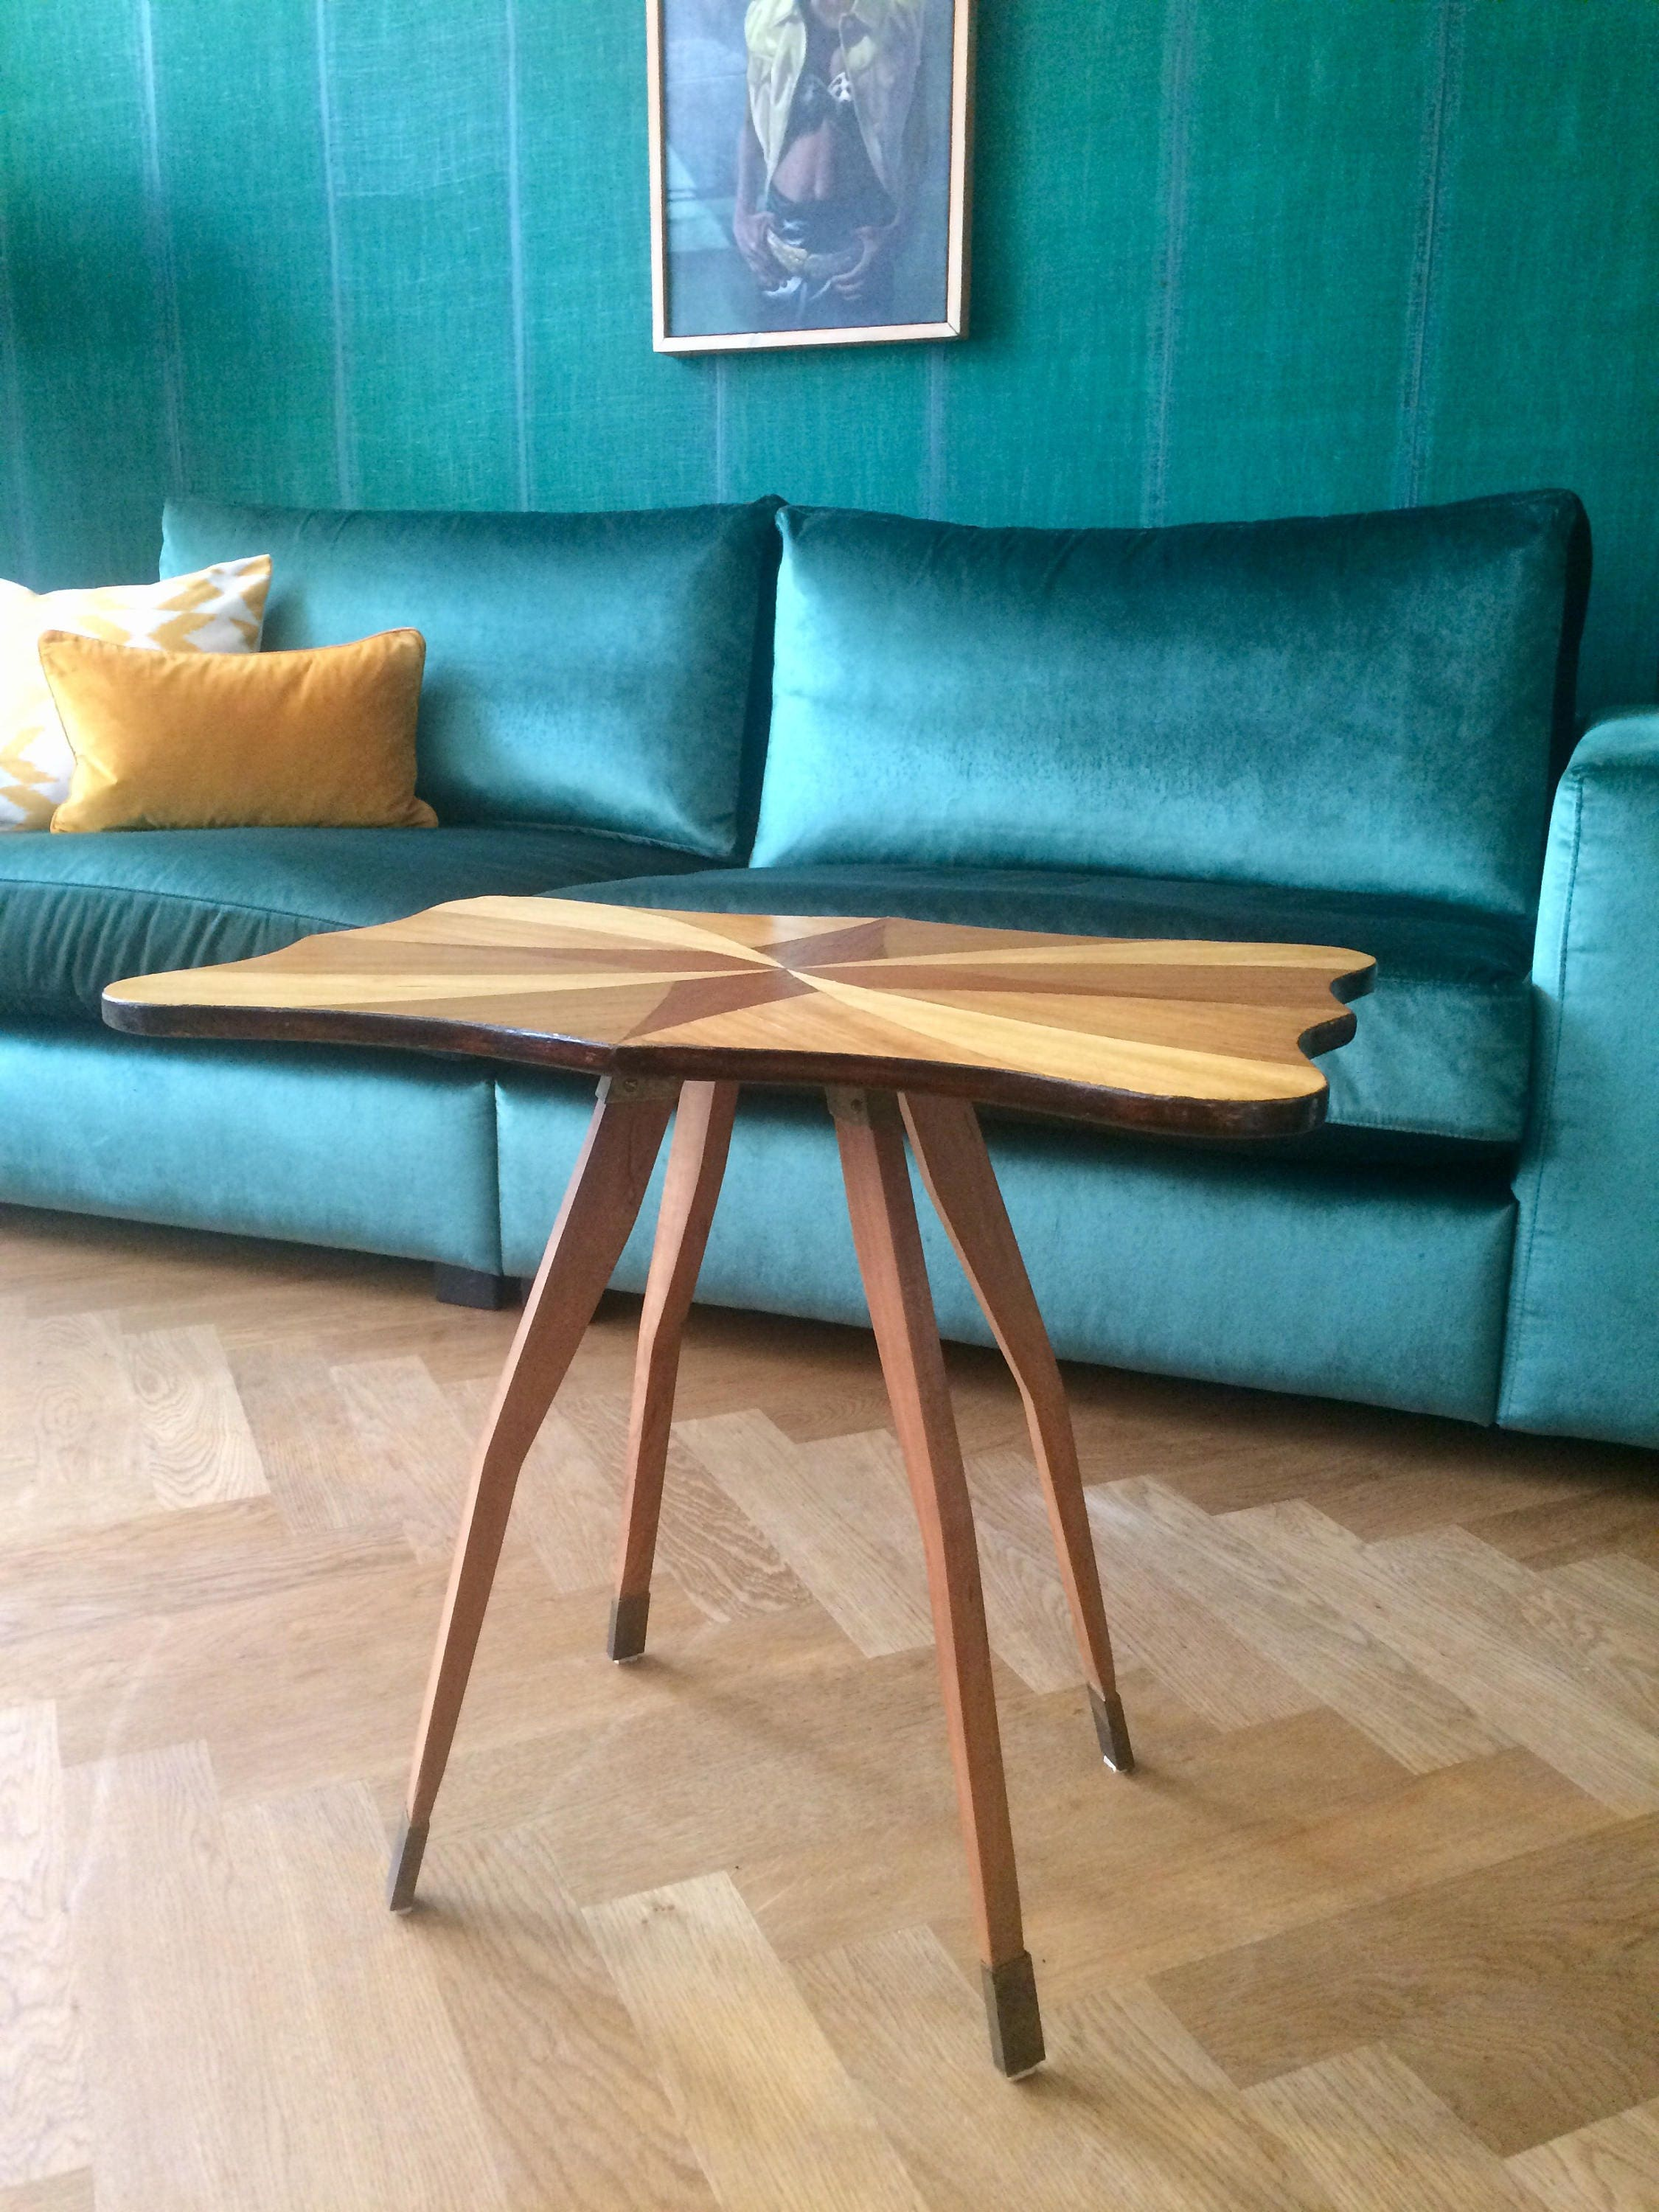 Italian table design 50 s style of ico parisi gio ponti paolo buffa